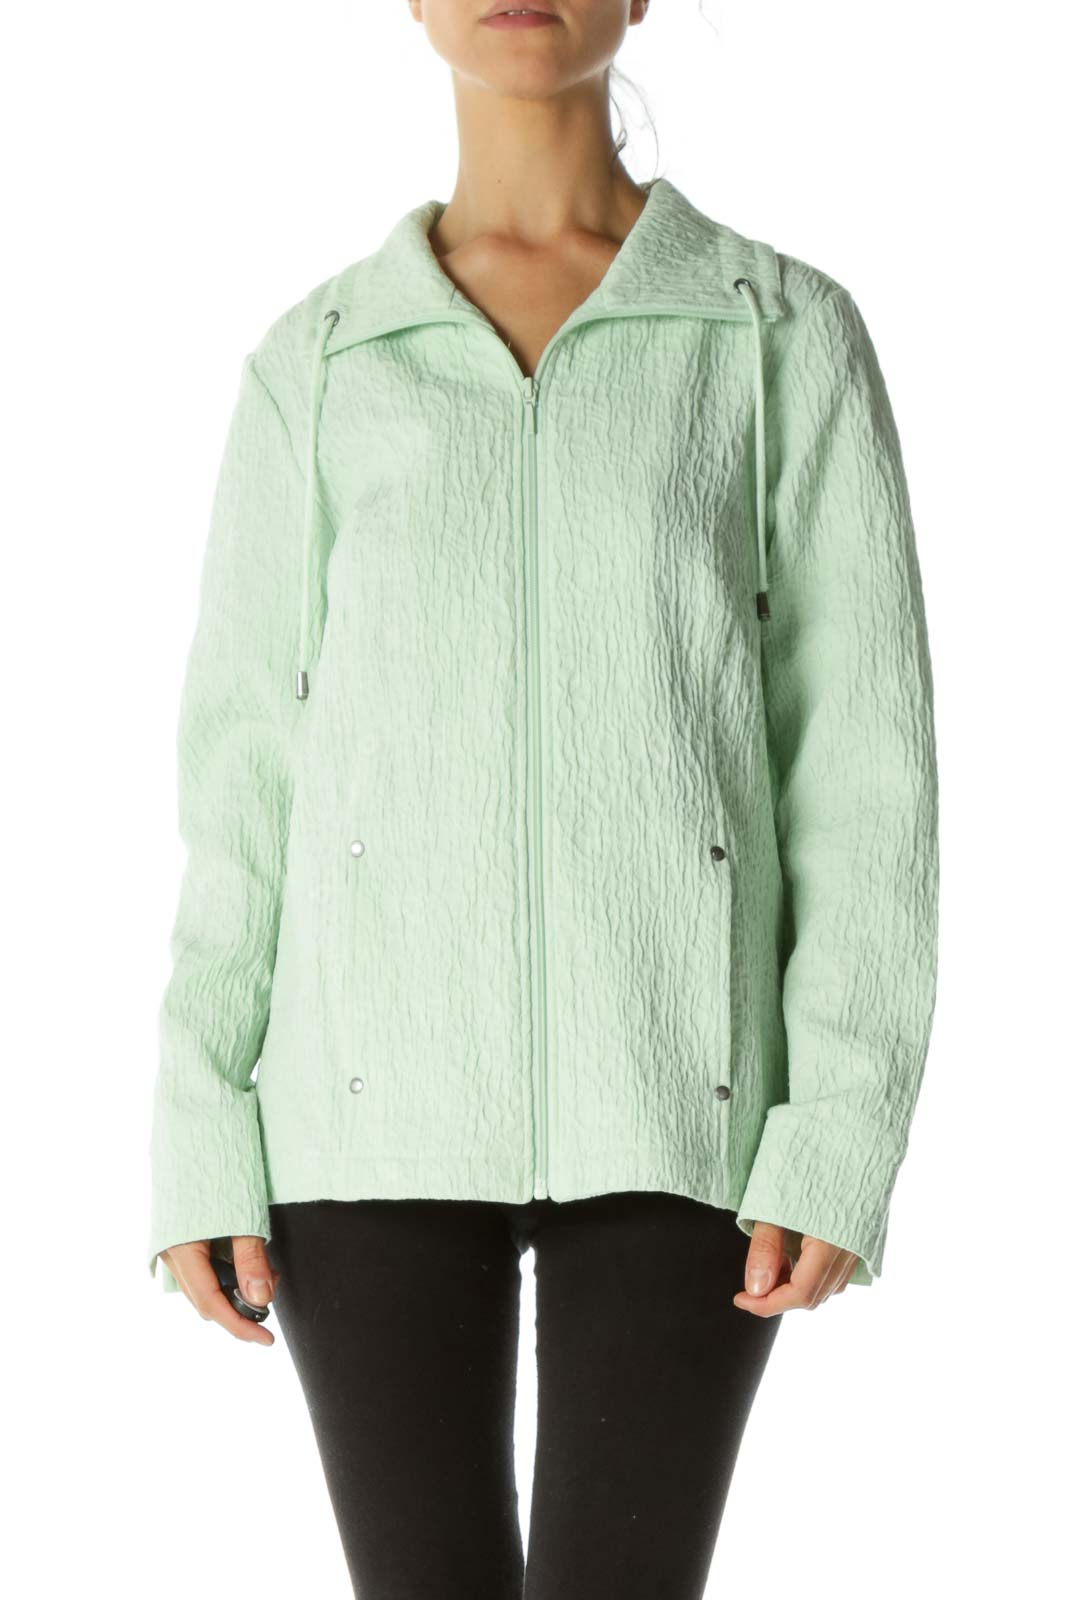 Mint Green Jacquard Drawstring Zippered Pocketed Jacket